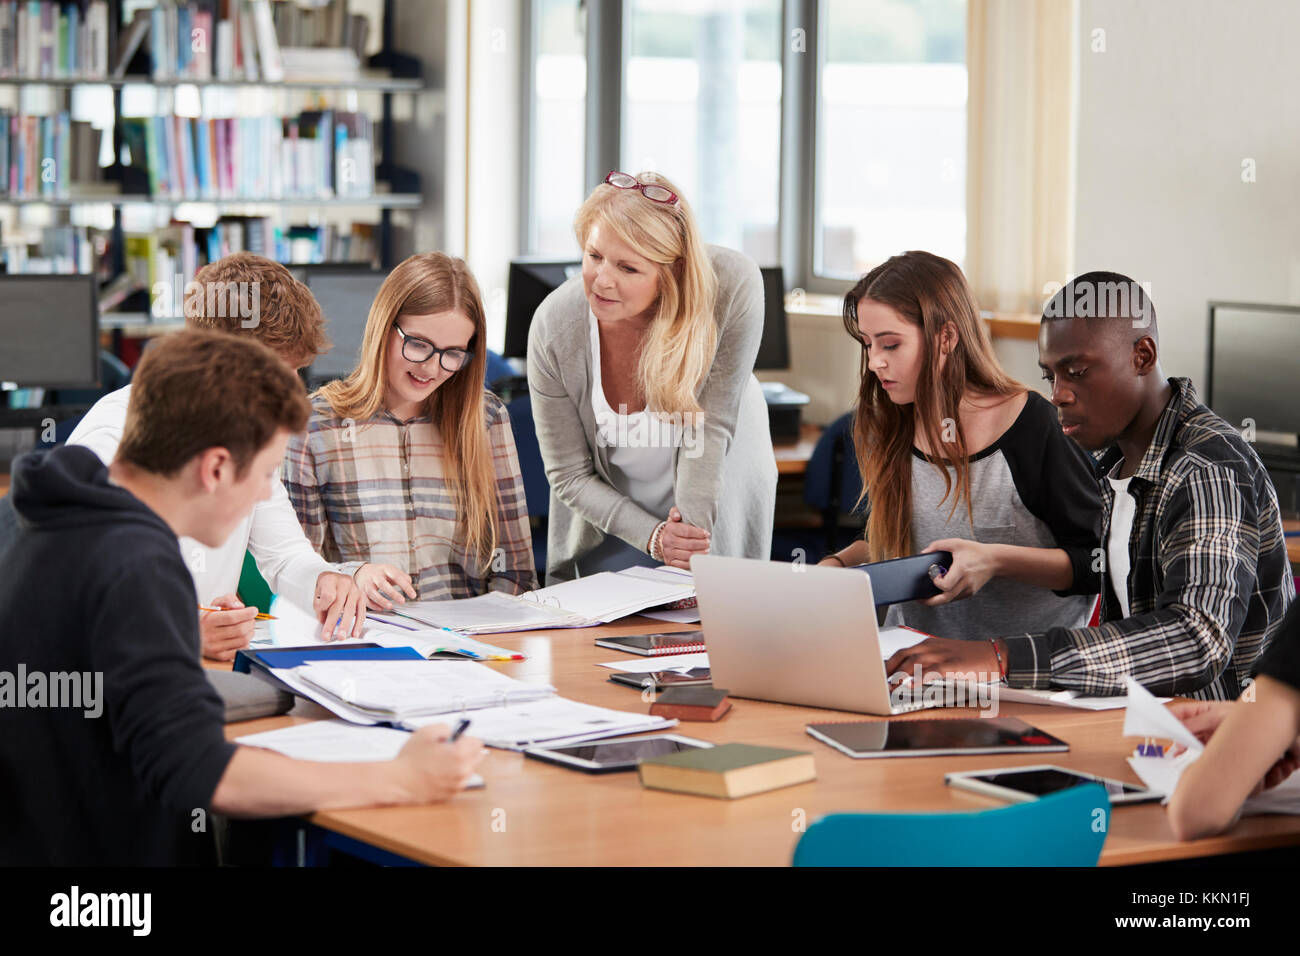 Female Teacher Working With College Students In Library - Stock Image